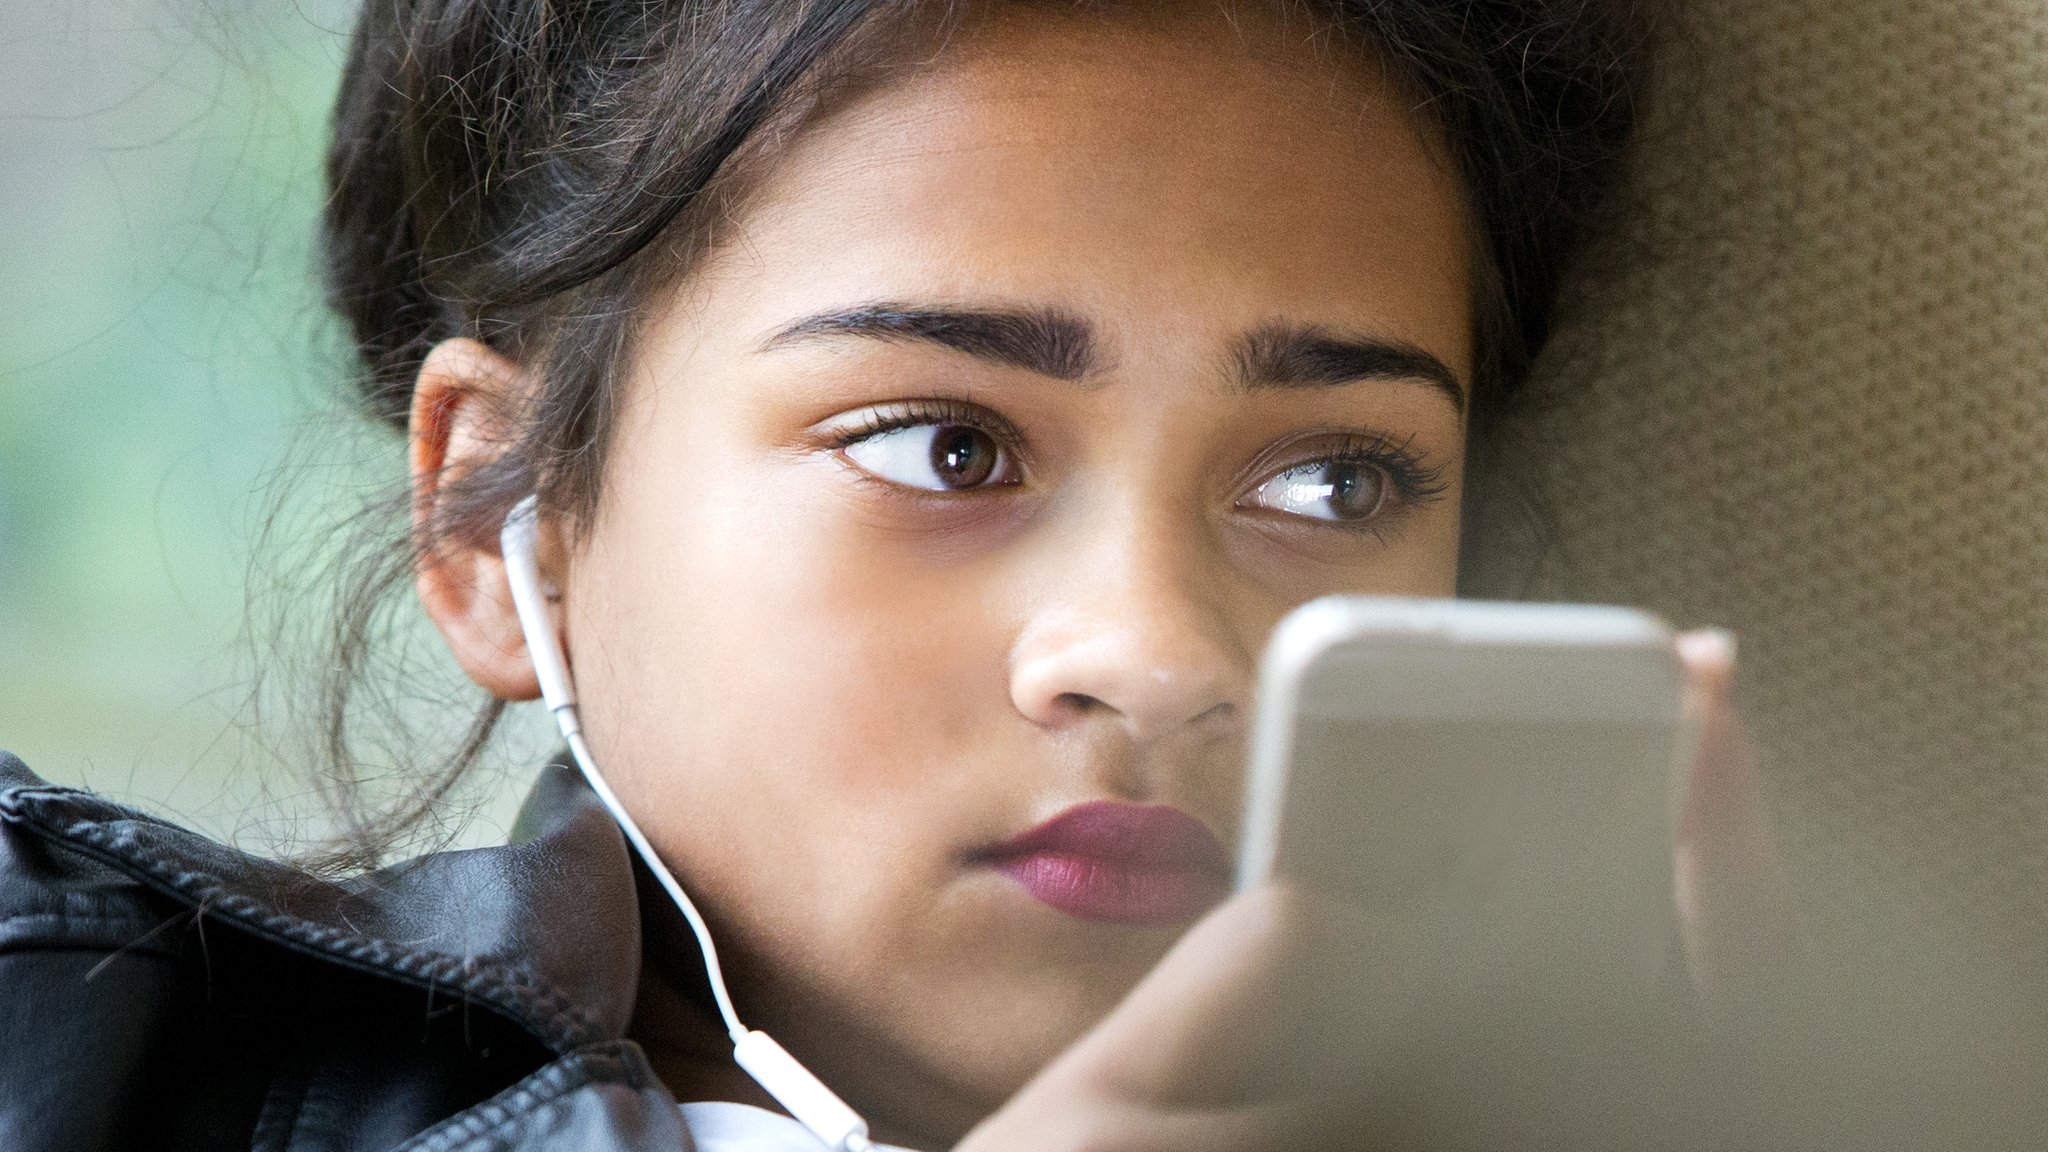 The trouble knowing how much screen time is 'too much'